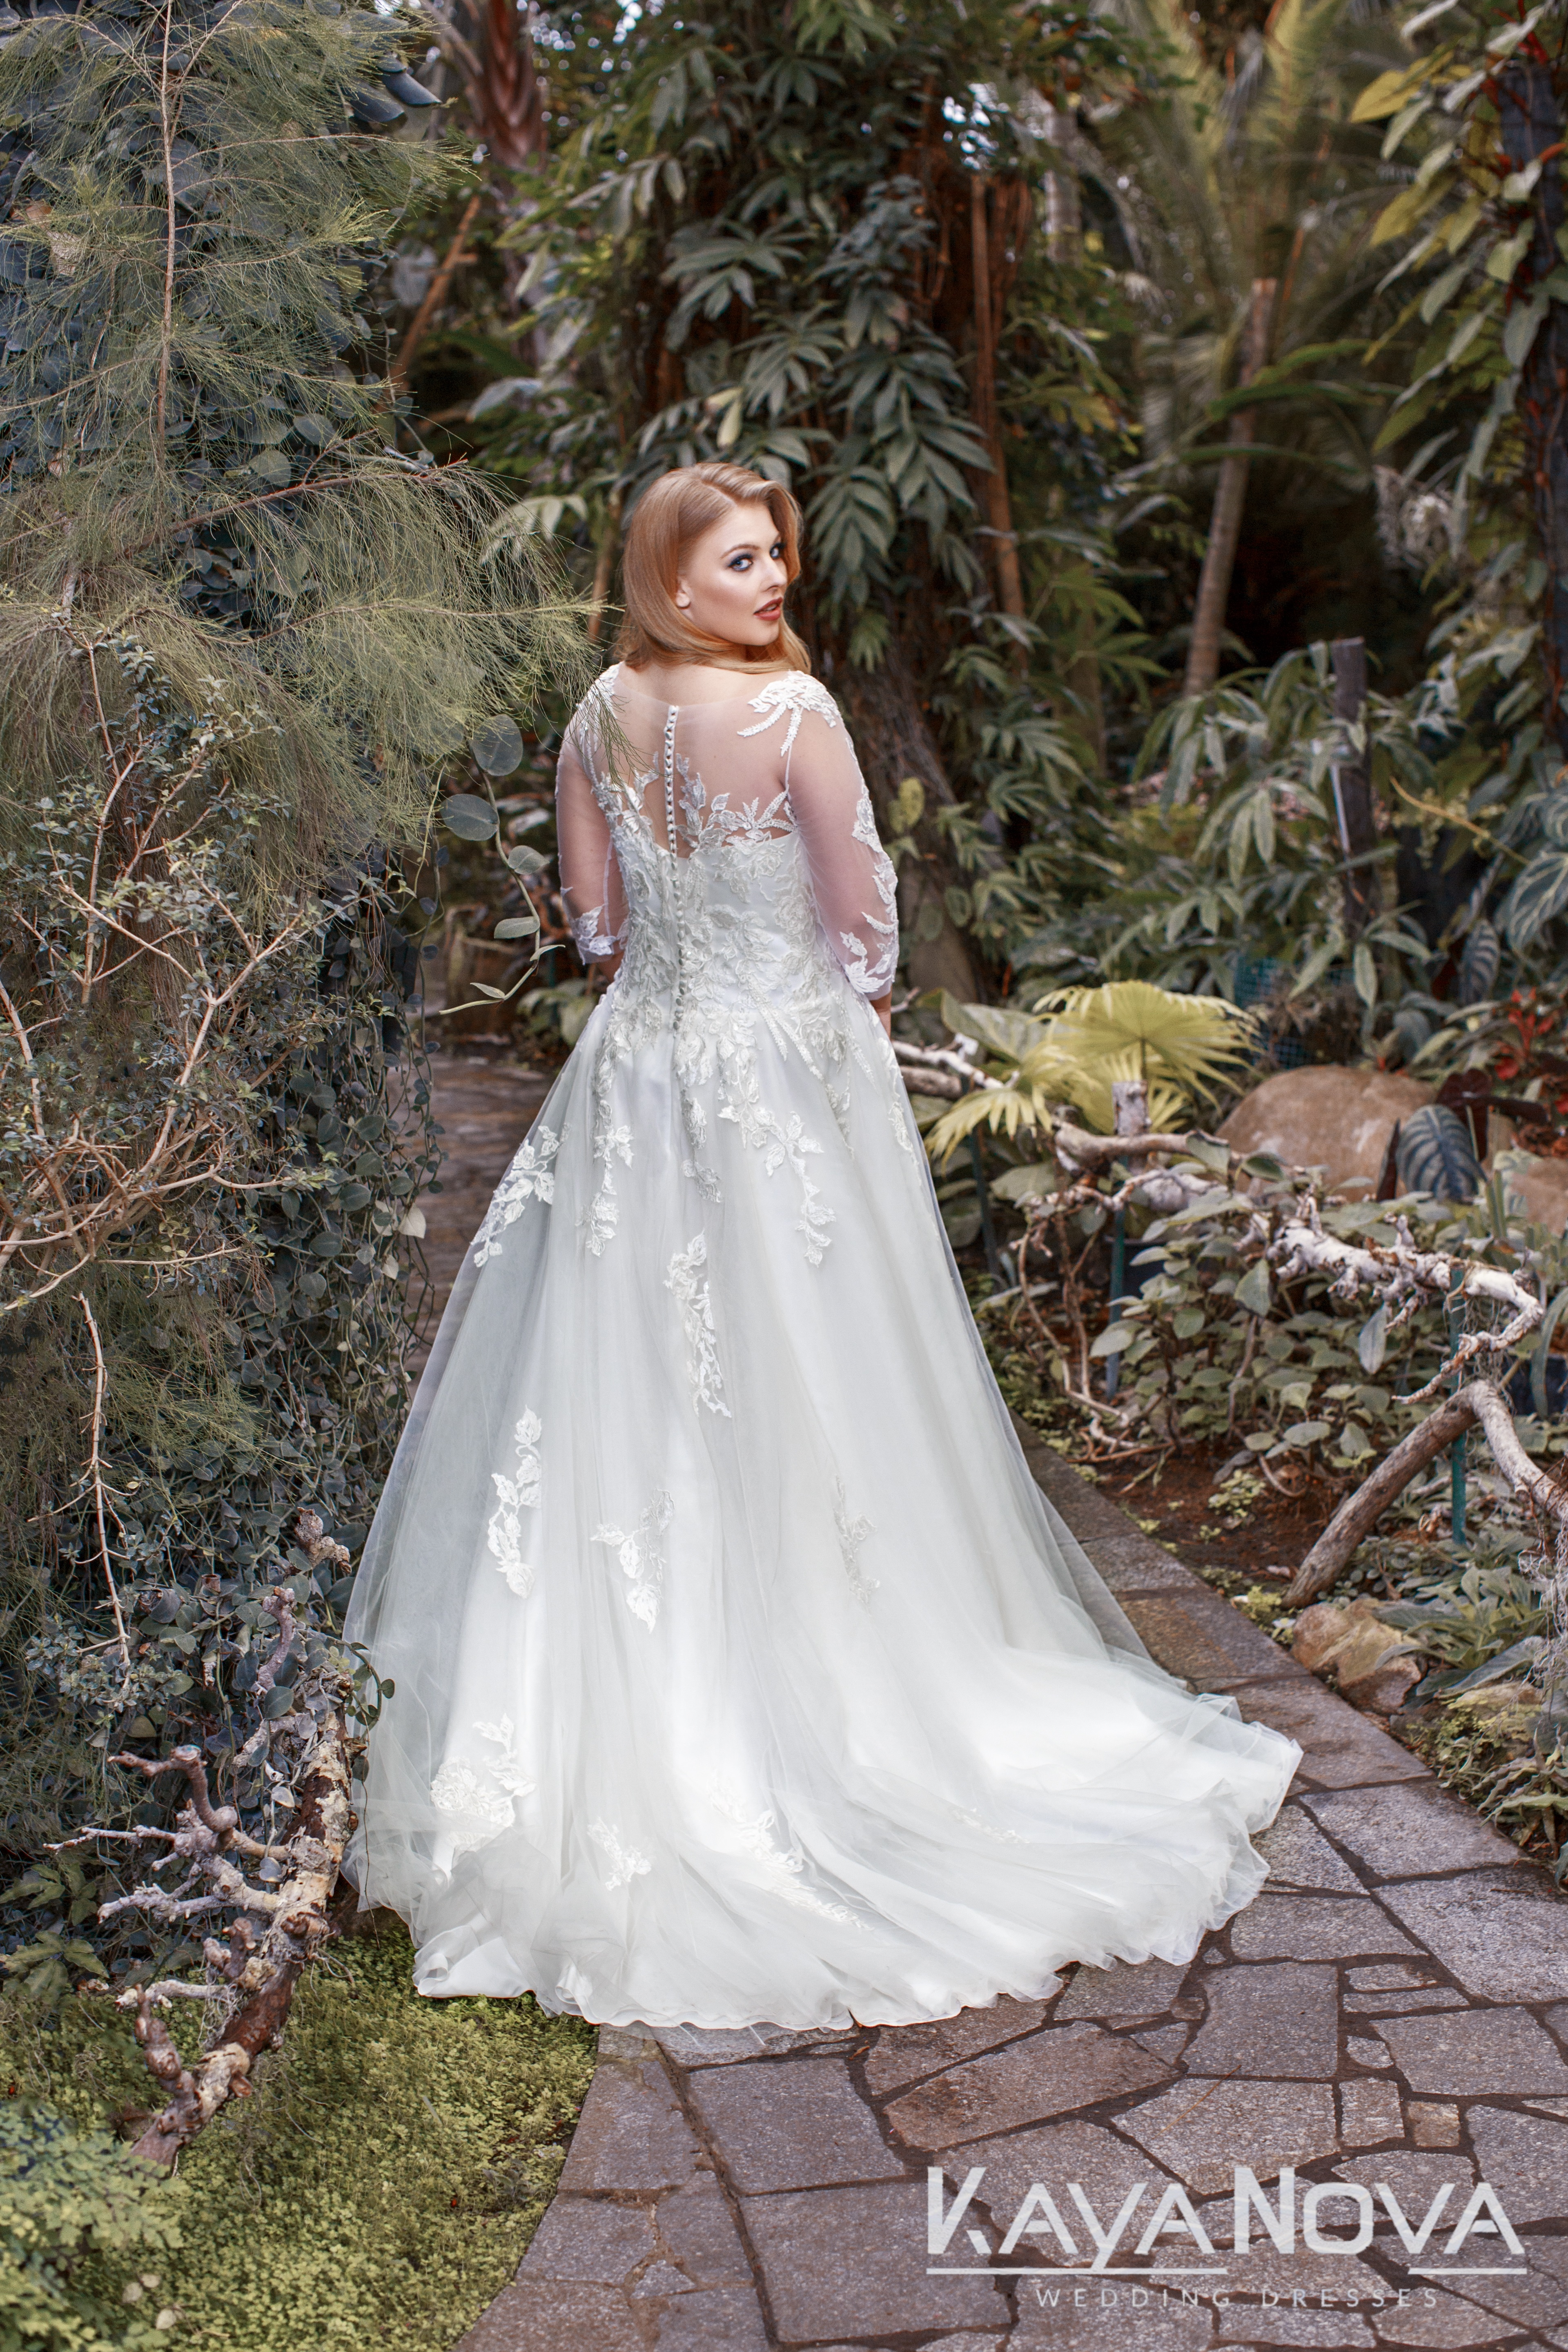 https://kayawedding.com/images/stories/virtuemart/product/768C9982 copy.jpg